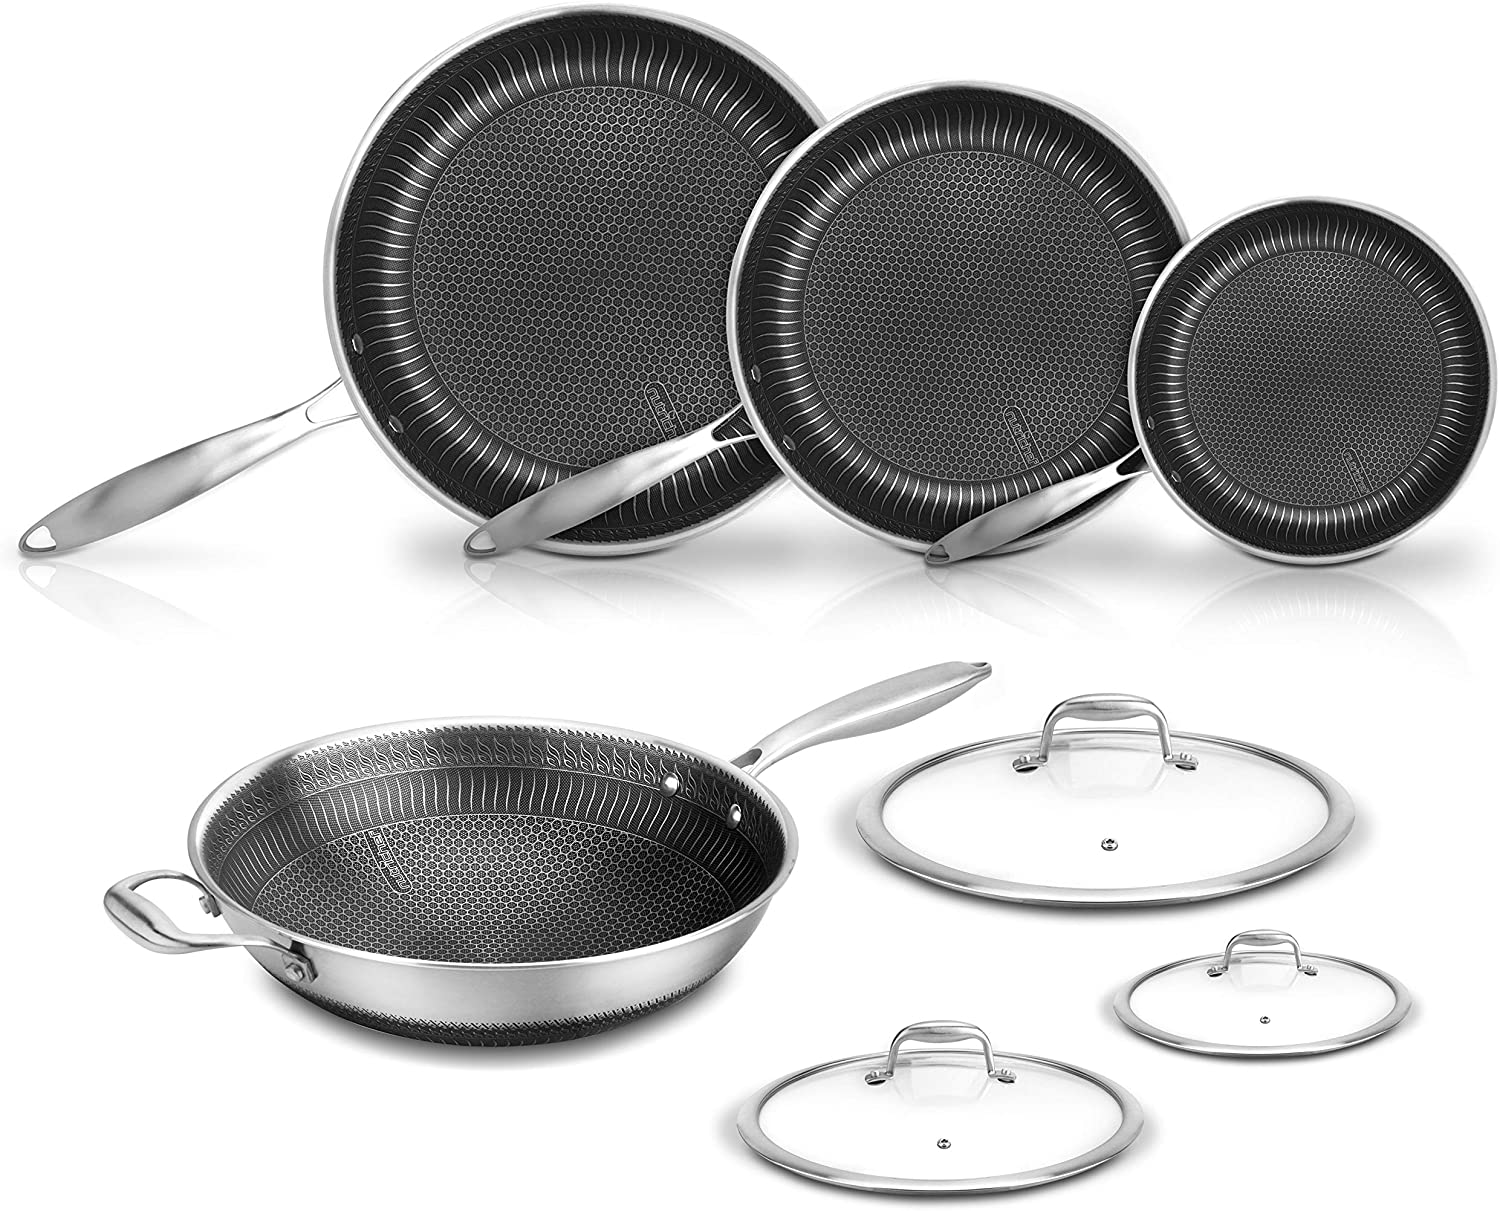 7-Piece Cookware Set Stainless Steel - Triply Kitchenware Pans Set Kitchen Cookware w/ DAKIN Etching Non-Stick Coating - Small, Medium, & Large Stir Fry Pan with Lid, Wok - NutriChef NC3PLY7S